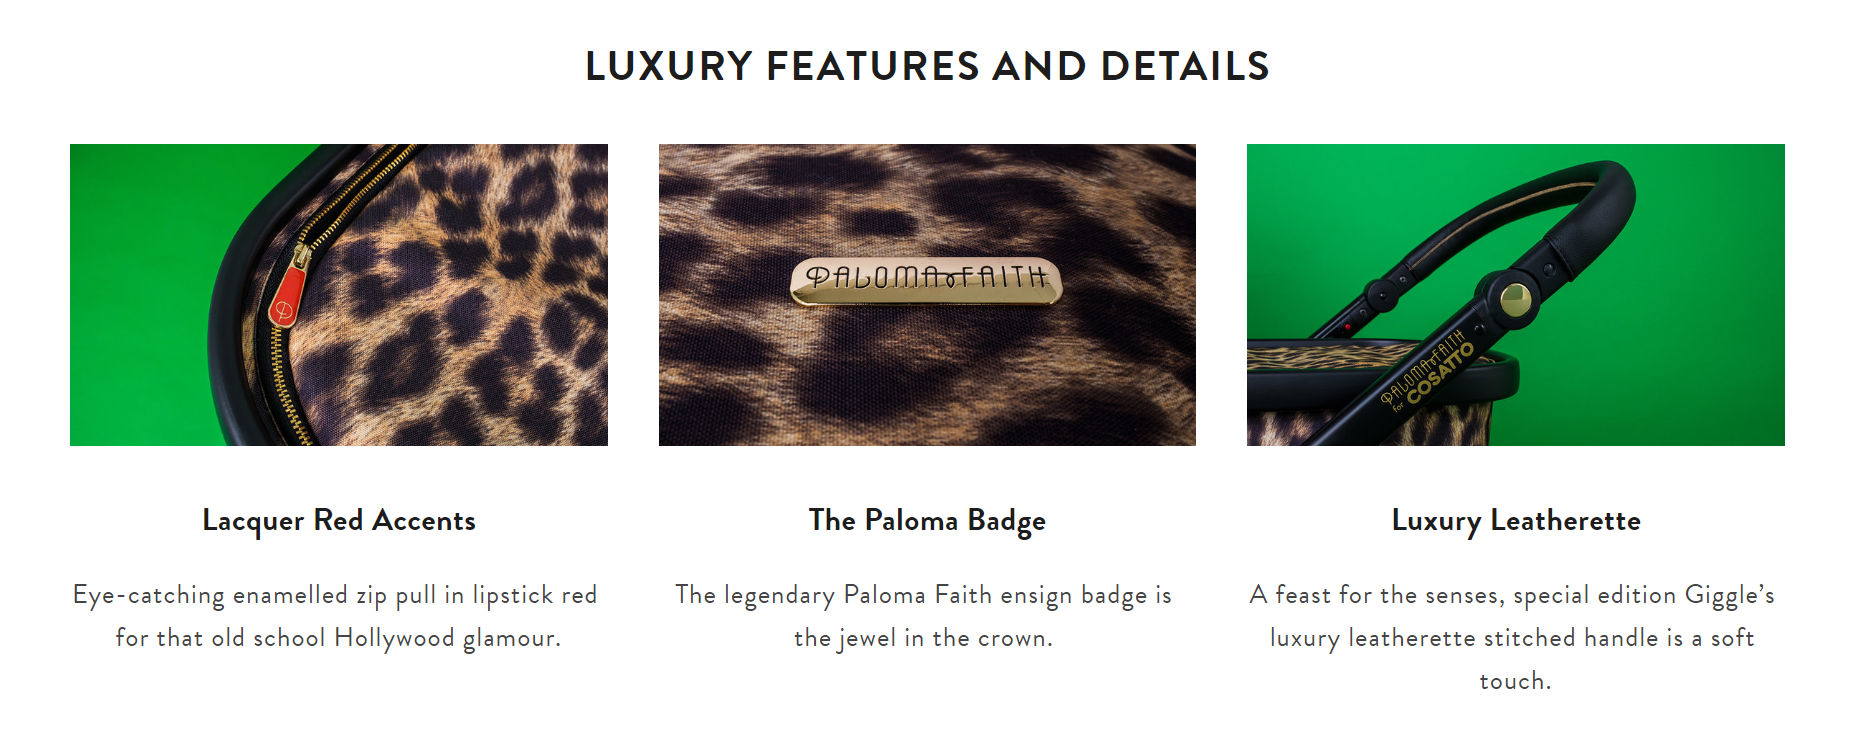 cosatto paloma faith leopard print giggle features